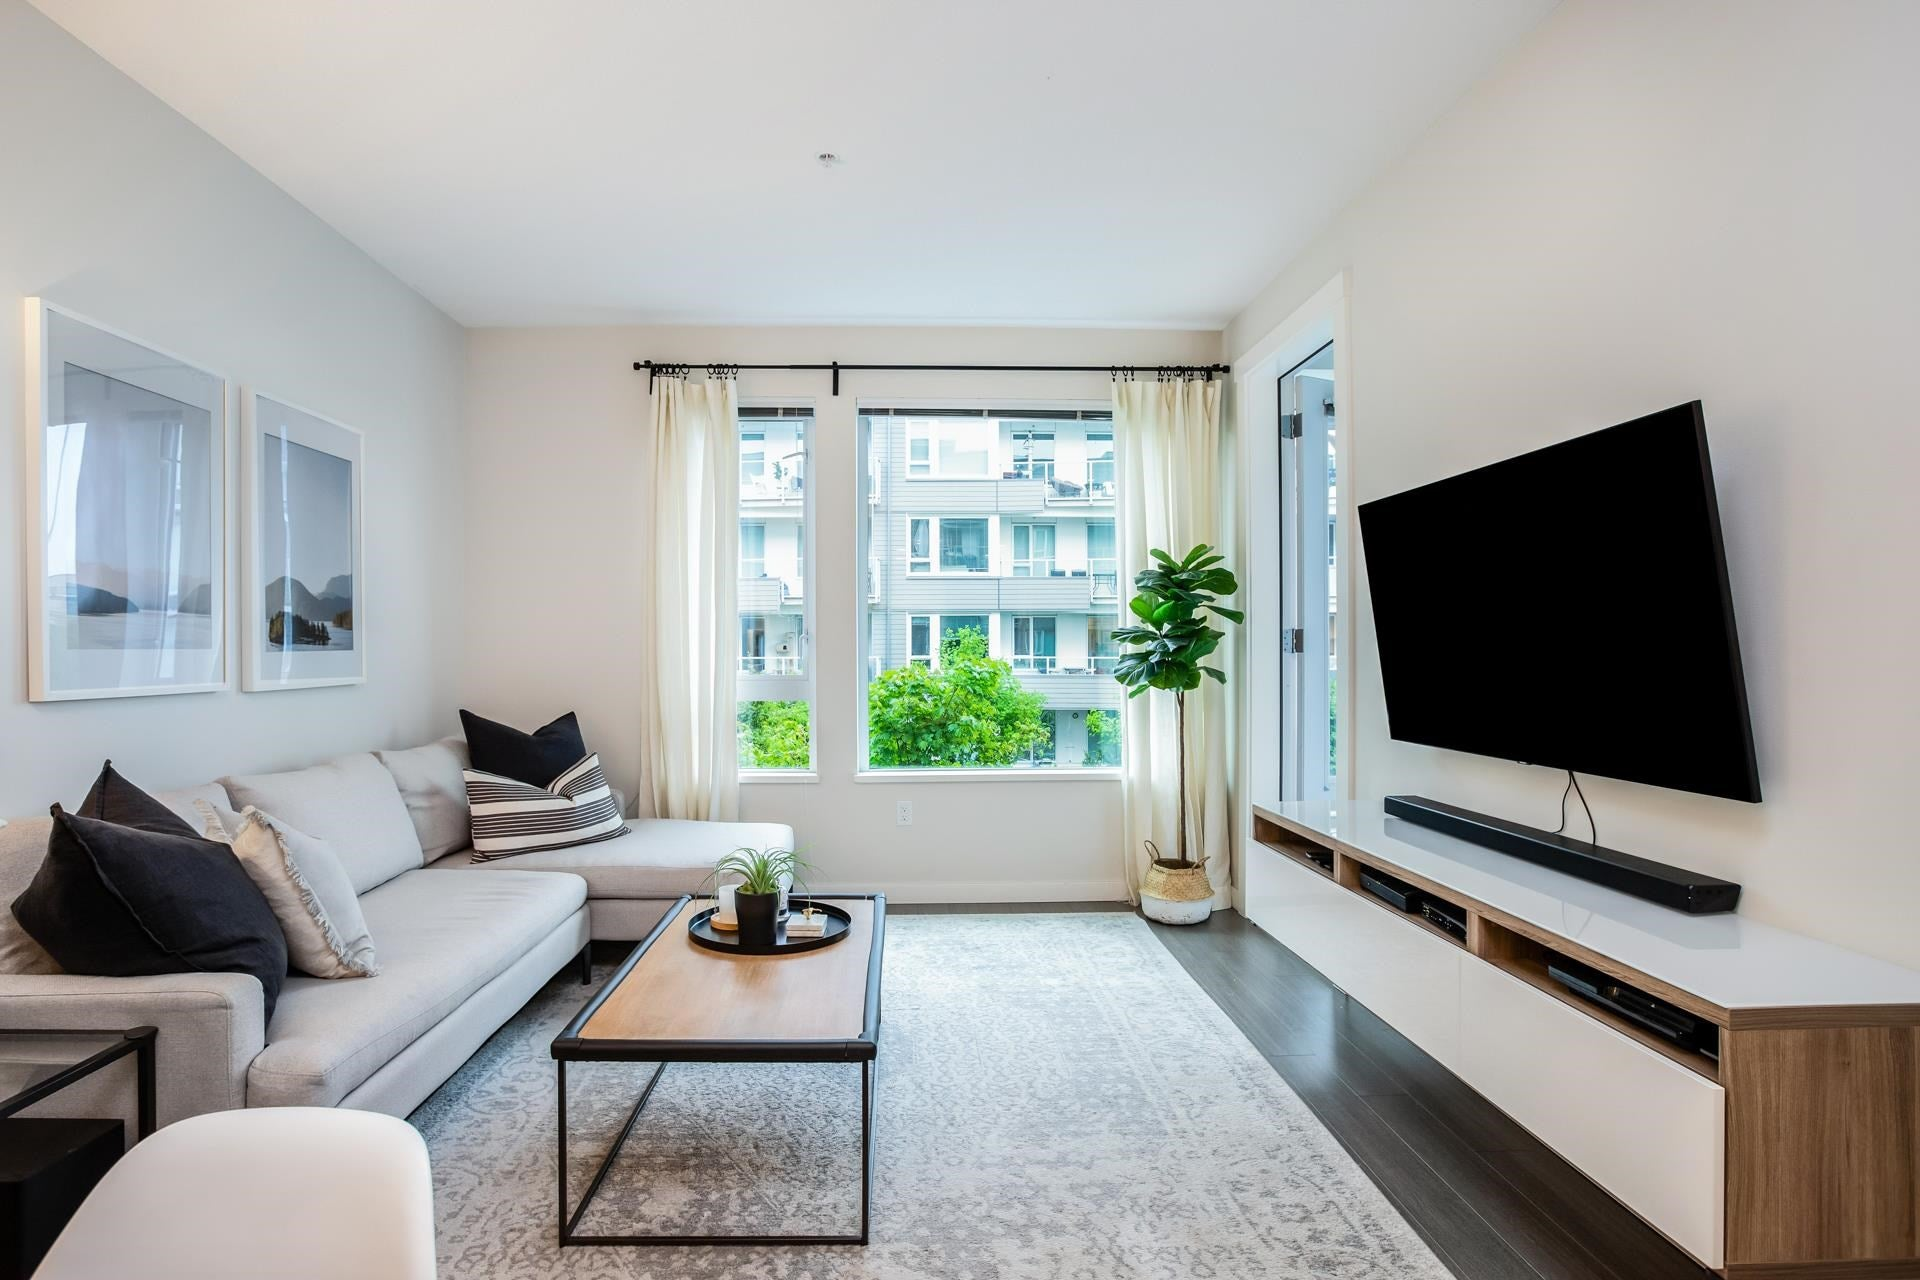 207 255 W 1ST STREET - Lower Lonsdale Apartment/Condo for sale, 2 Bedrooms (R2603882) - #13